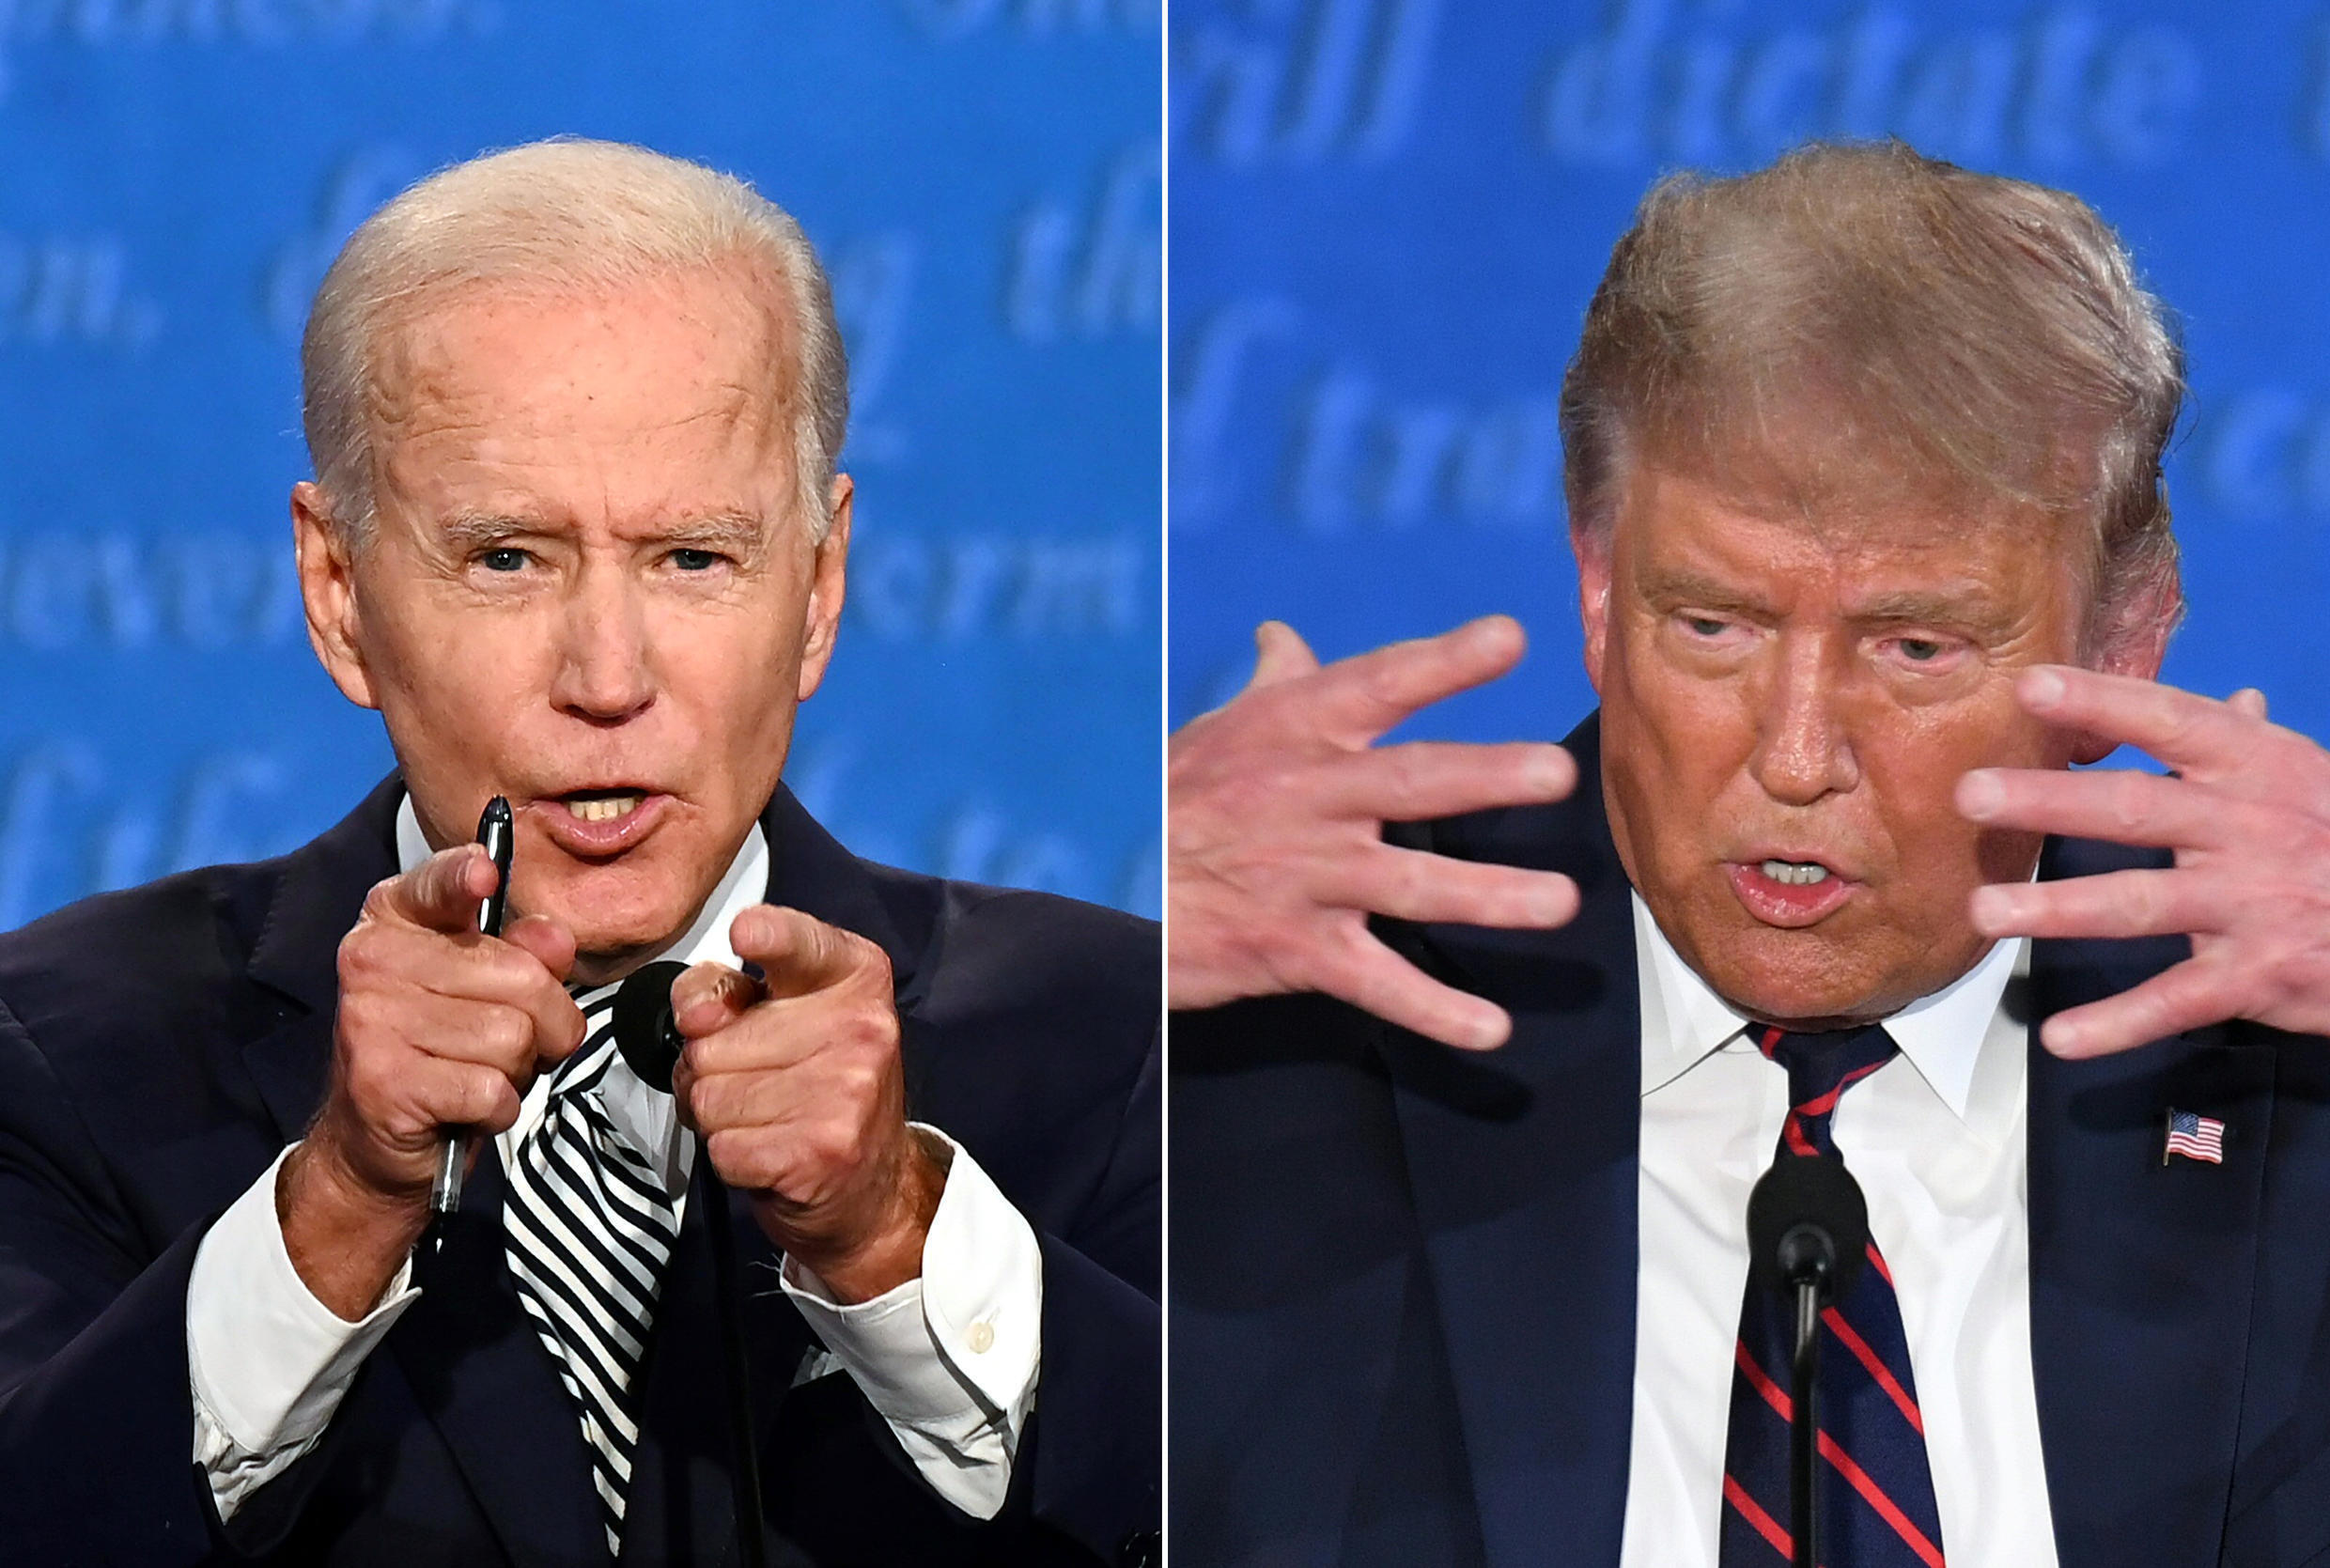 Cleveland's clash saw Donald Trump and Joe Biden repeatedly interrupting and insulting each other